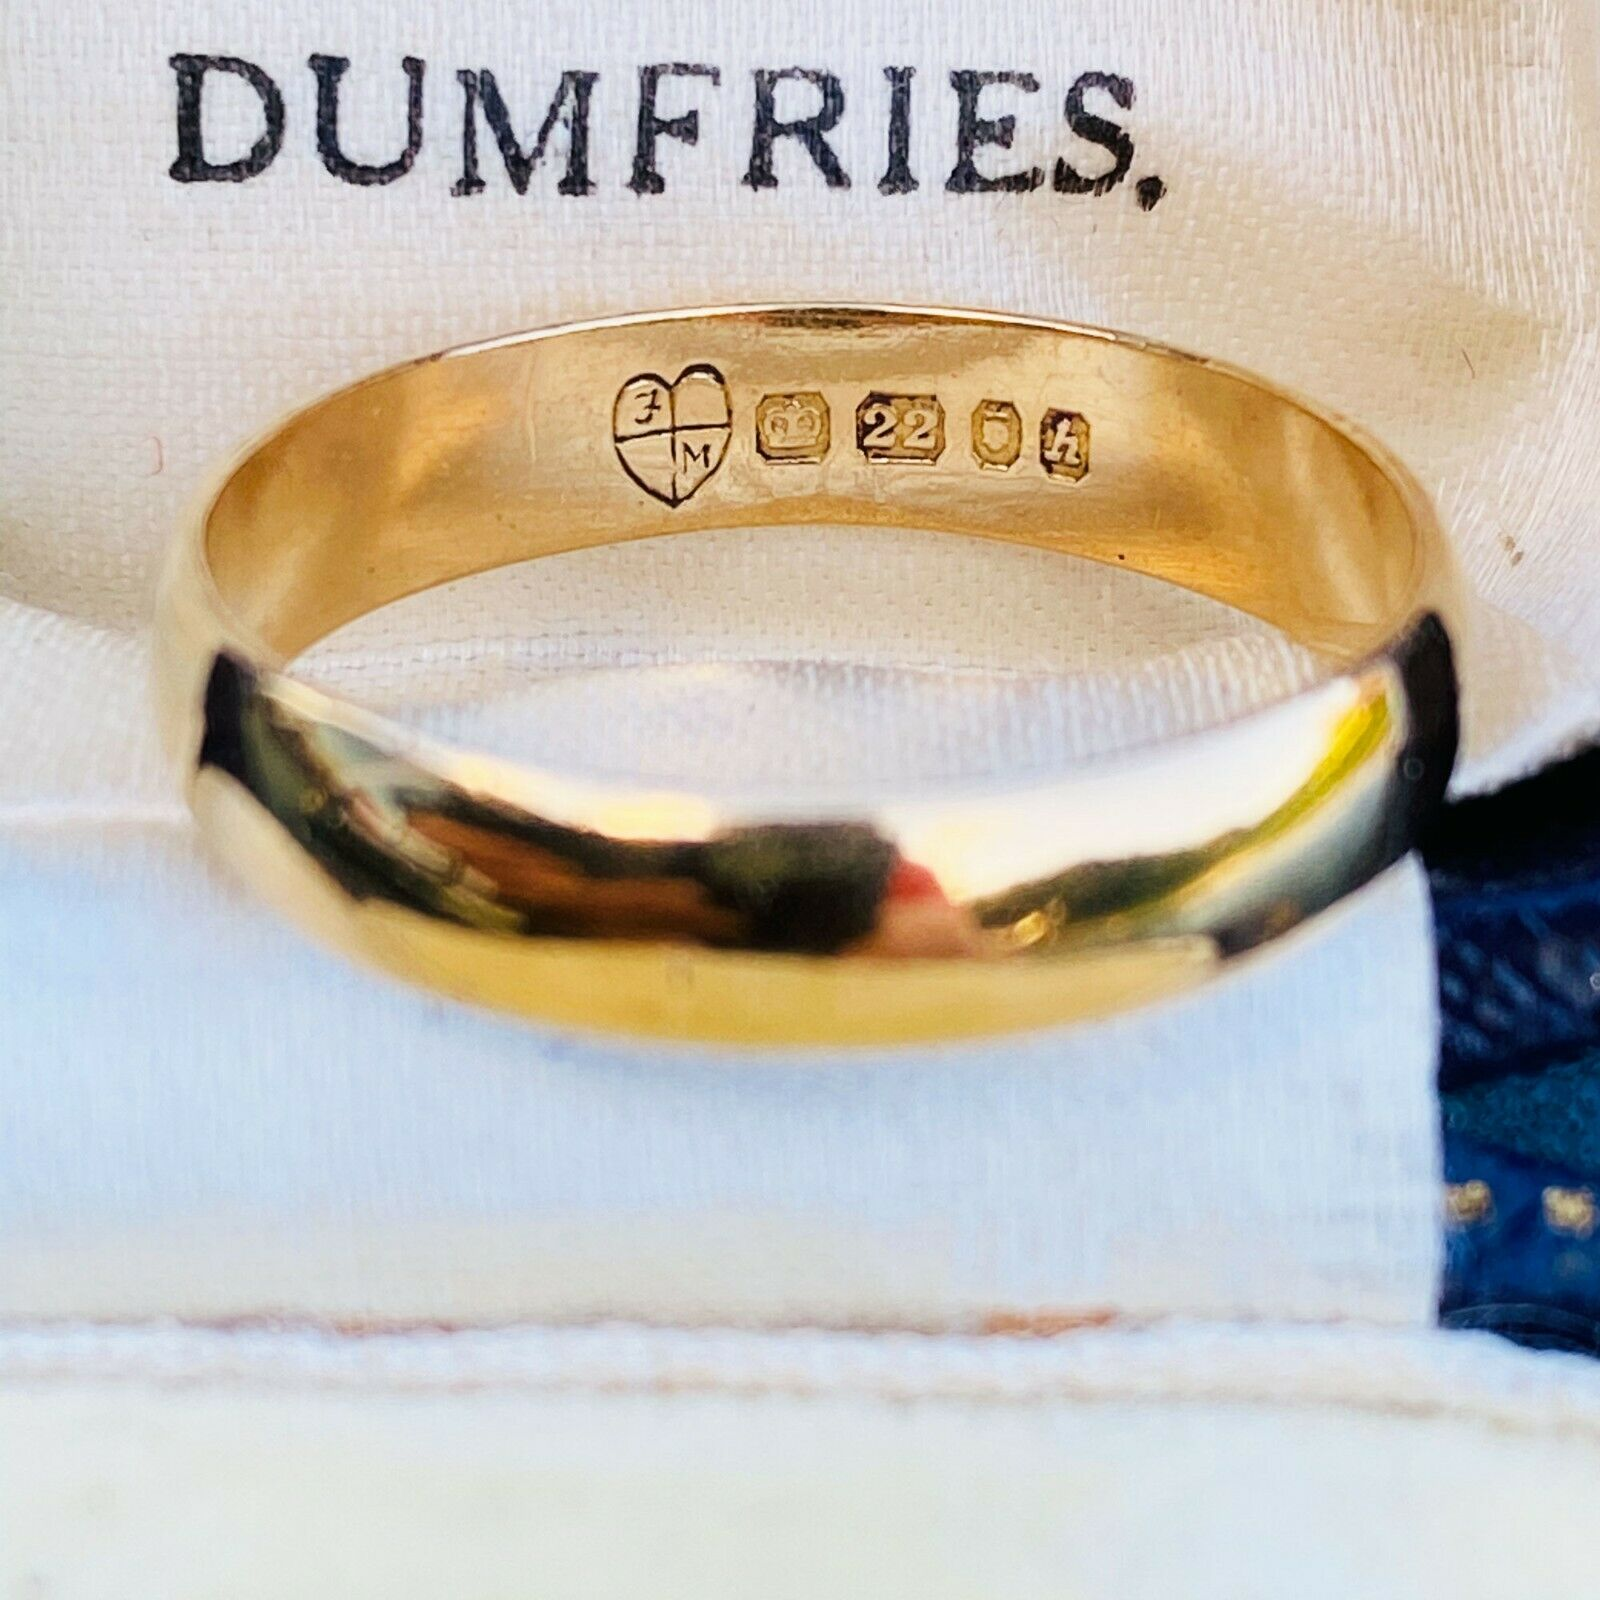 Vintage 22ct, 22k, 980 solid yellow gold D-shaped wedding ring, London 1963